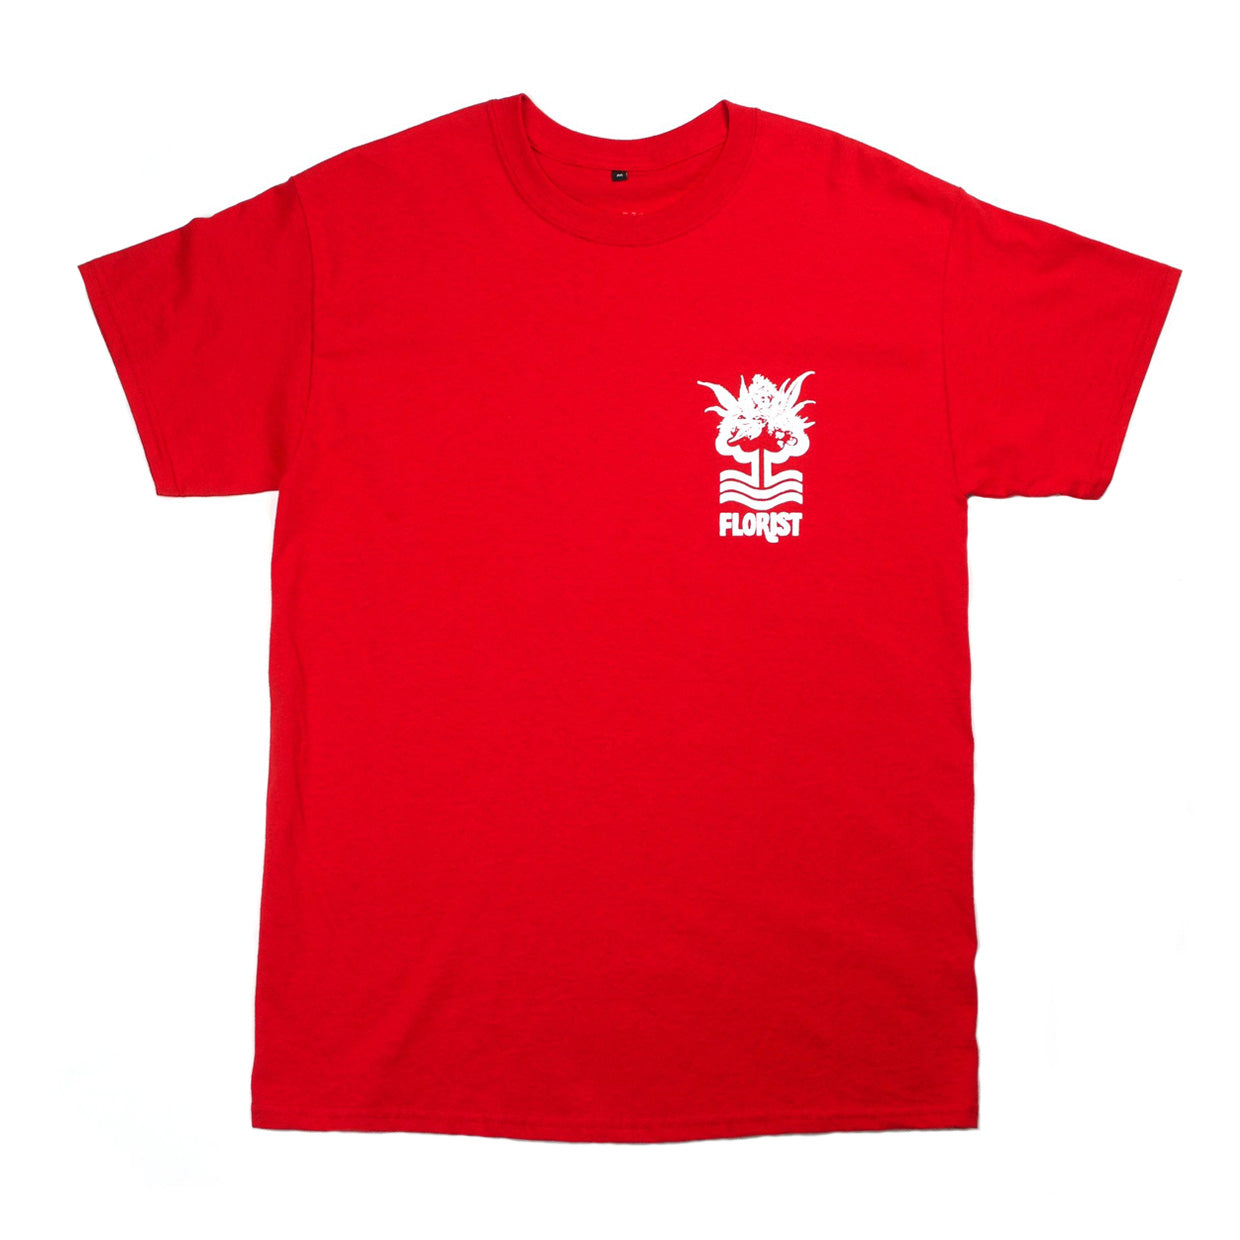 0115 Records - T-Shirts - 0115 x The Tribes - Notts Florist T-shirt (Red)